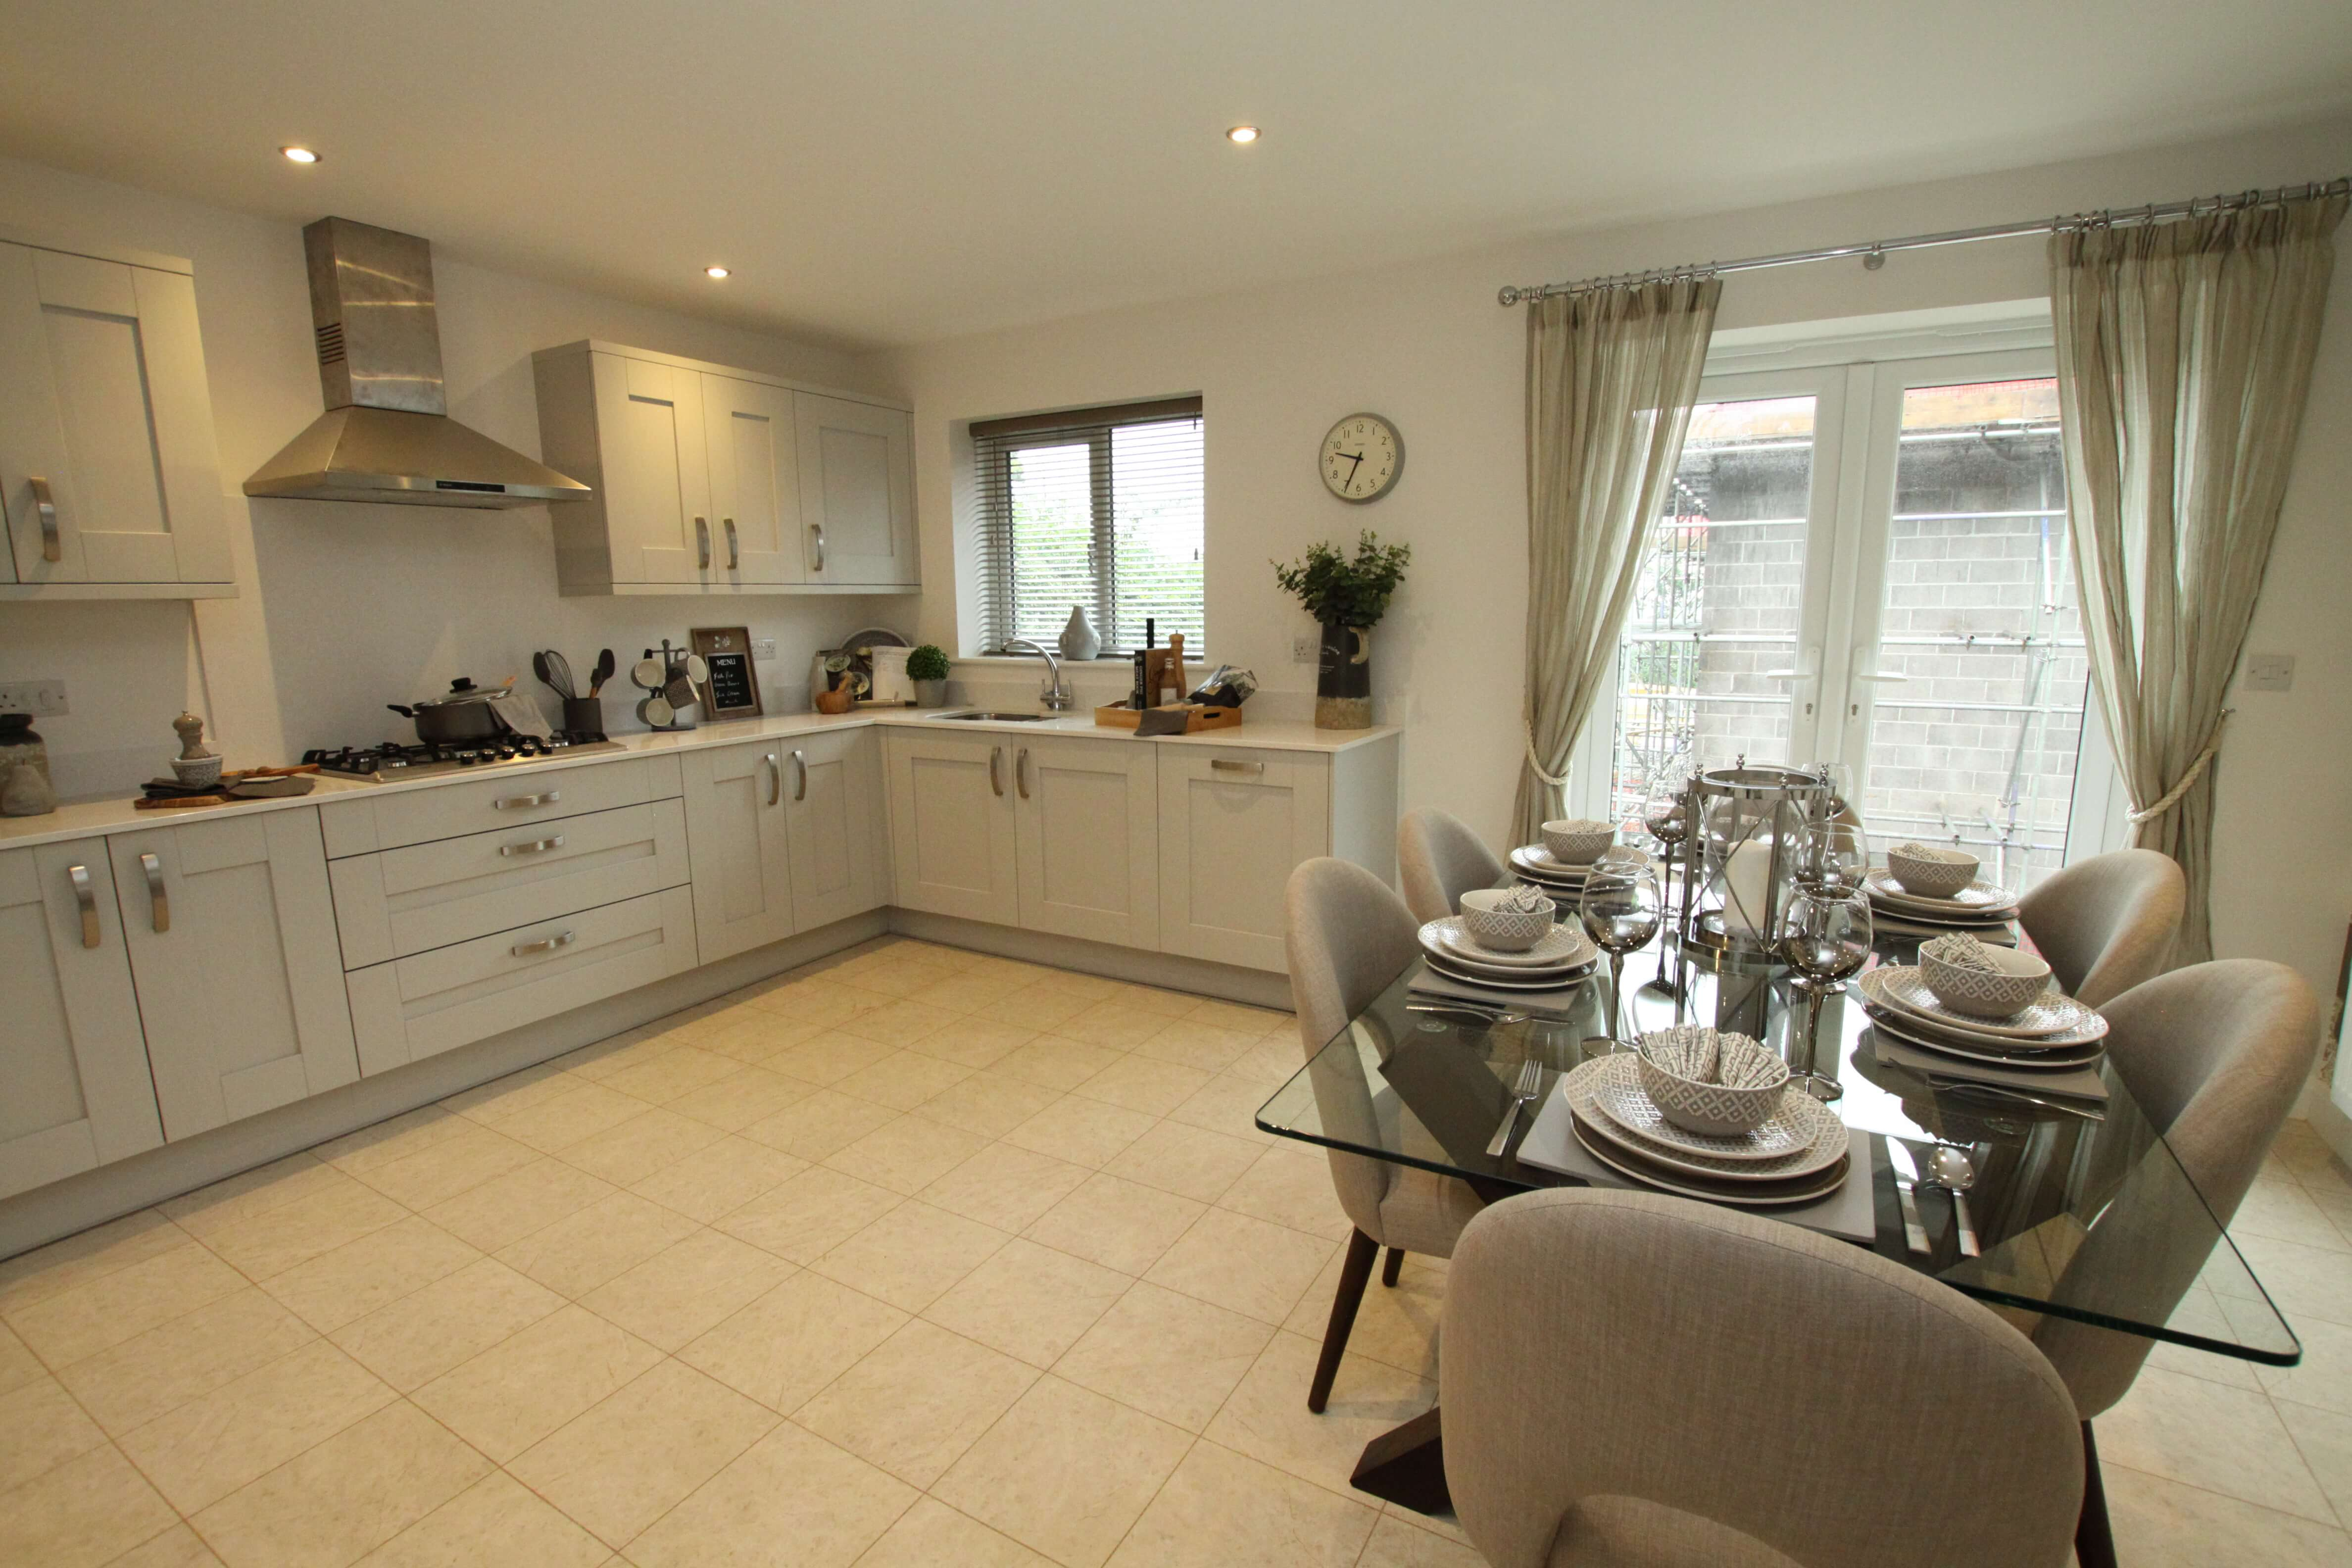 Applethwaite Homes